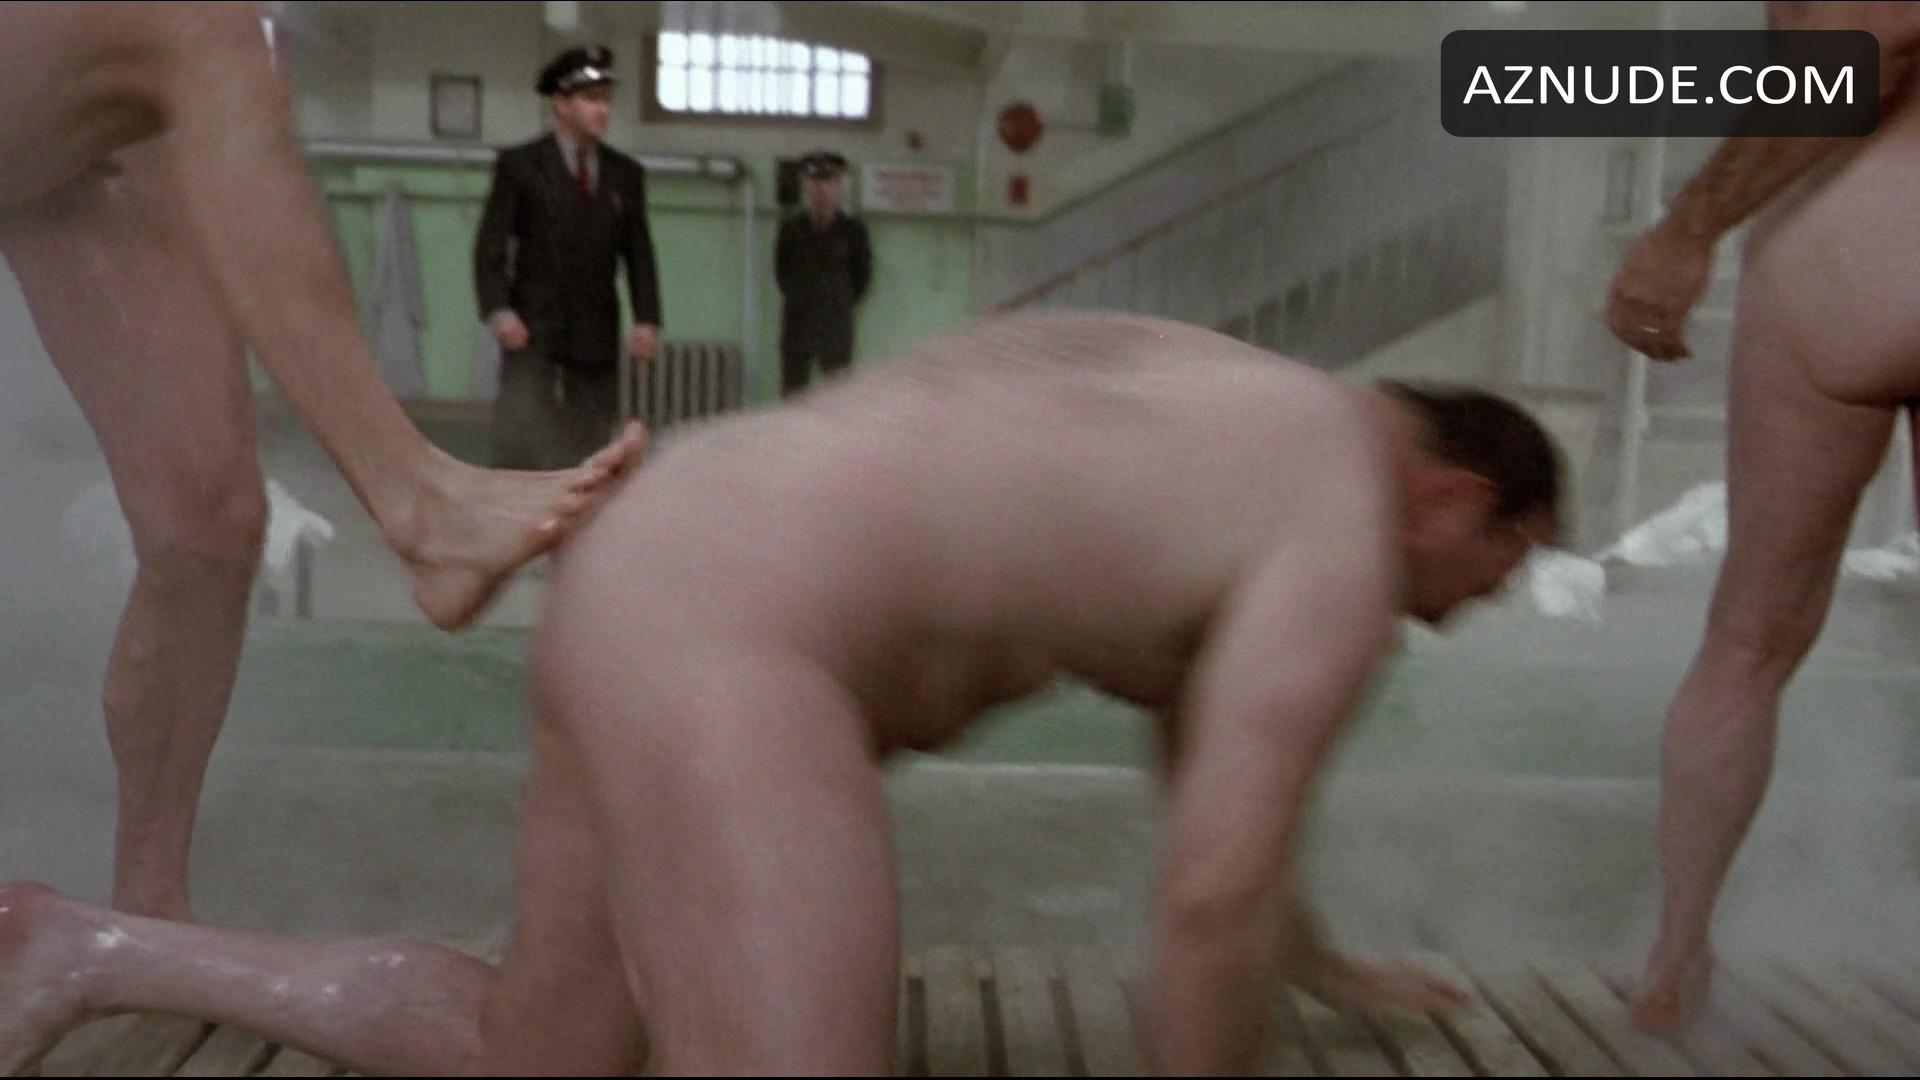 Escape From Alcatraz Nude Scenes - Aznude Men-6375